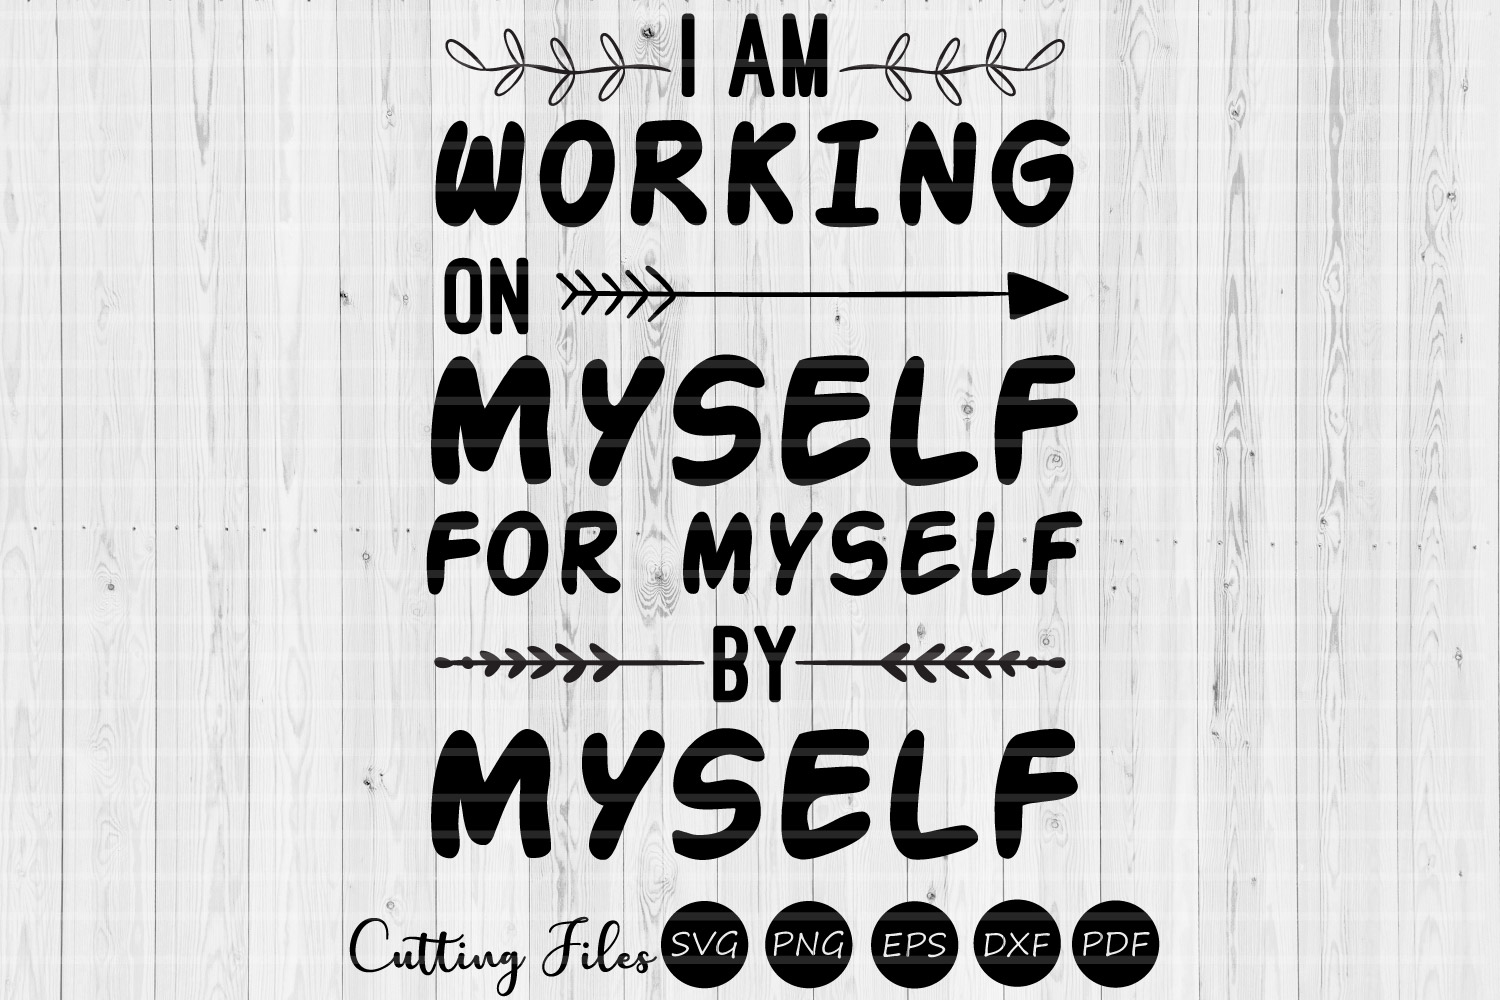 Download Free Working On Myself Motivational Svg Graphic By Hd Art Workshop Creative Fabrica for Cricut Explore, Silhouette and other cutting machines.